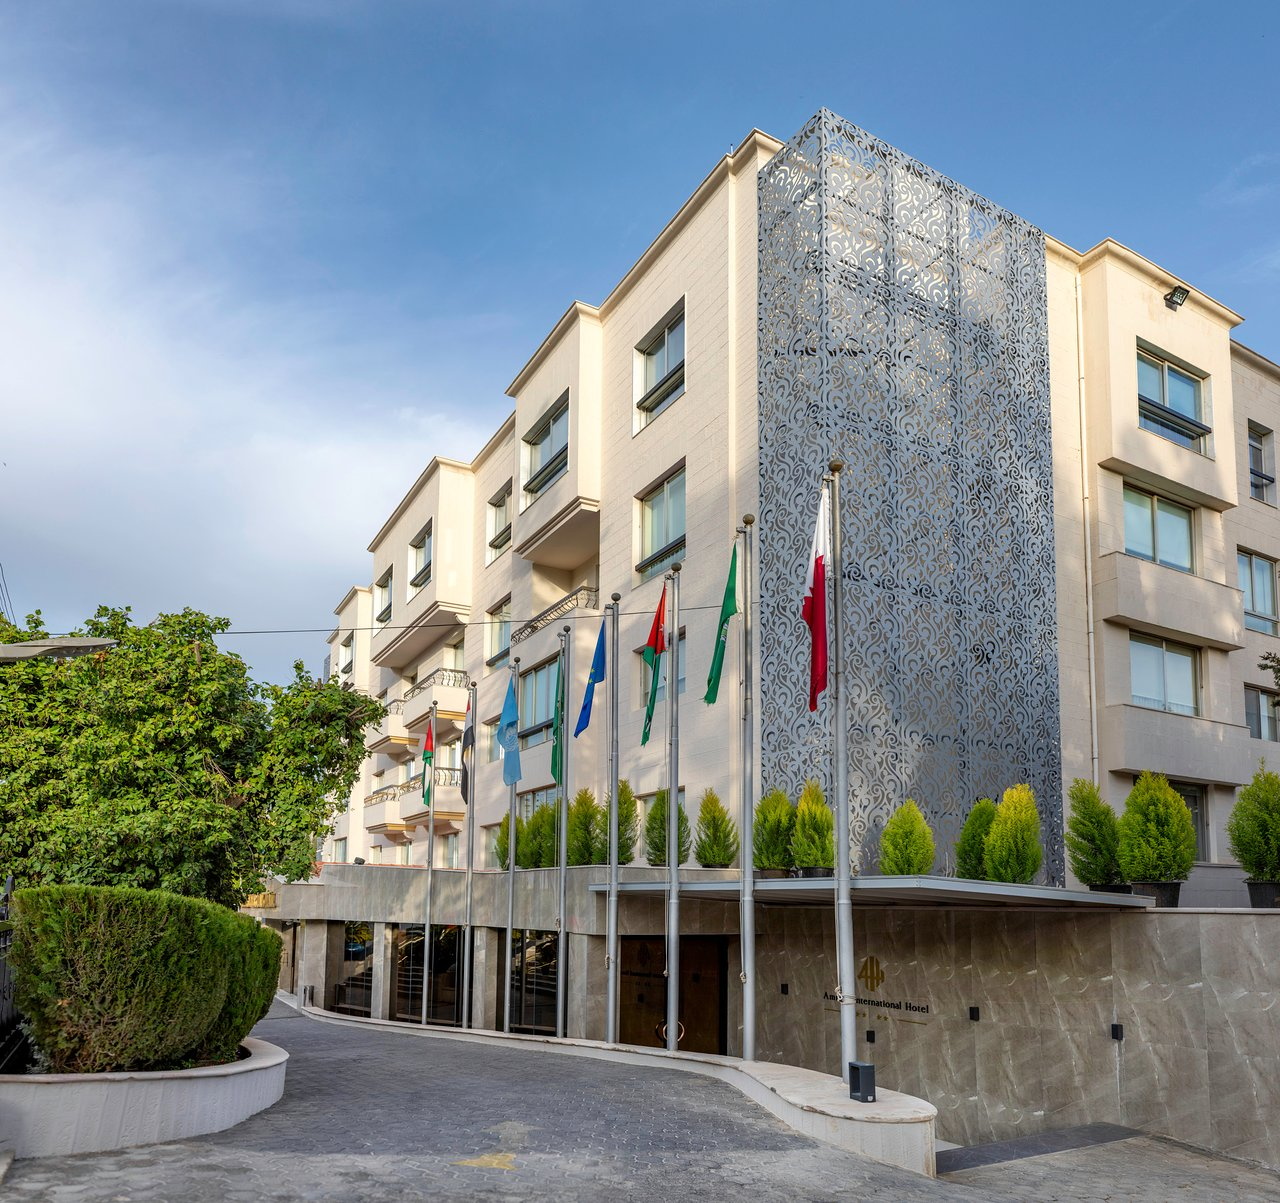 the 10 best 4 star hotels in amman of 2019 with prices tripadvisor rh tripadvisor com